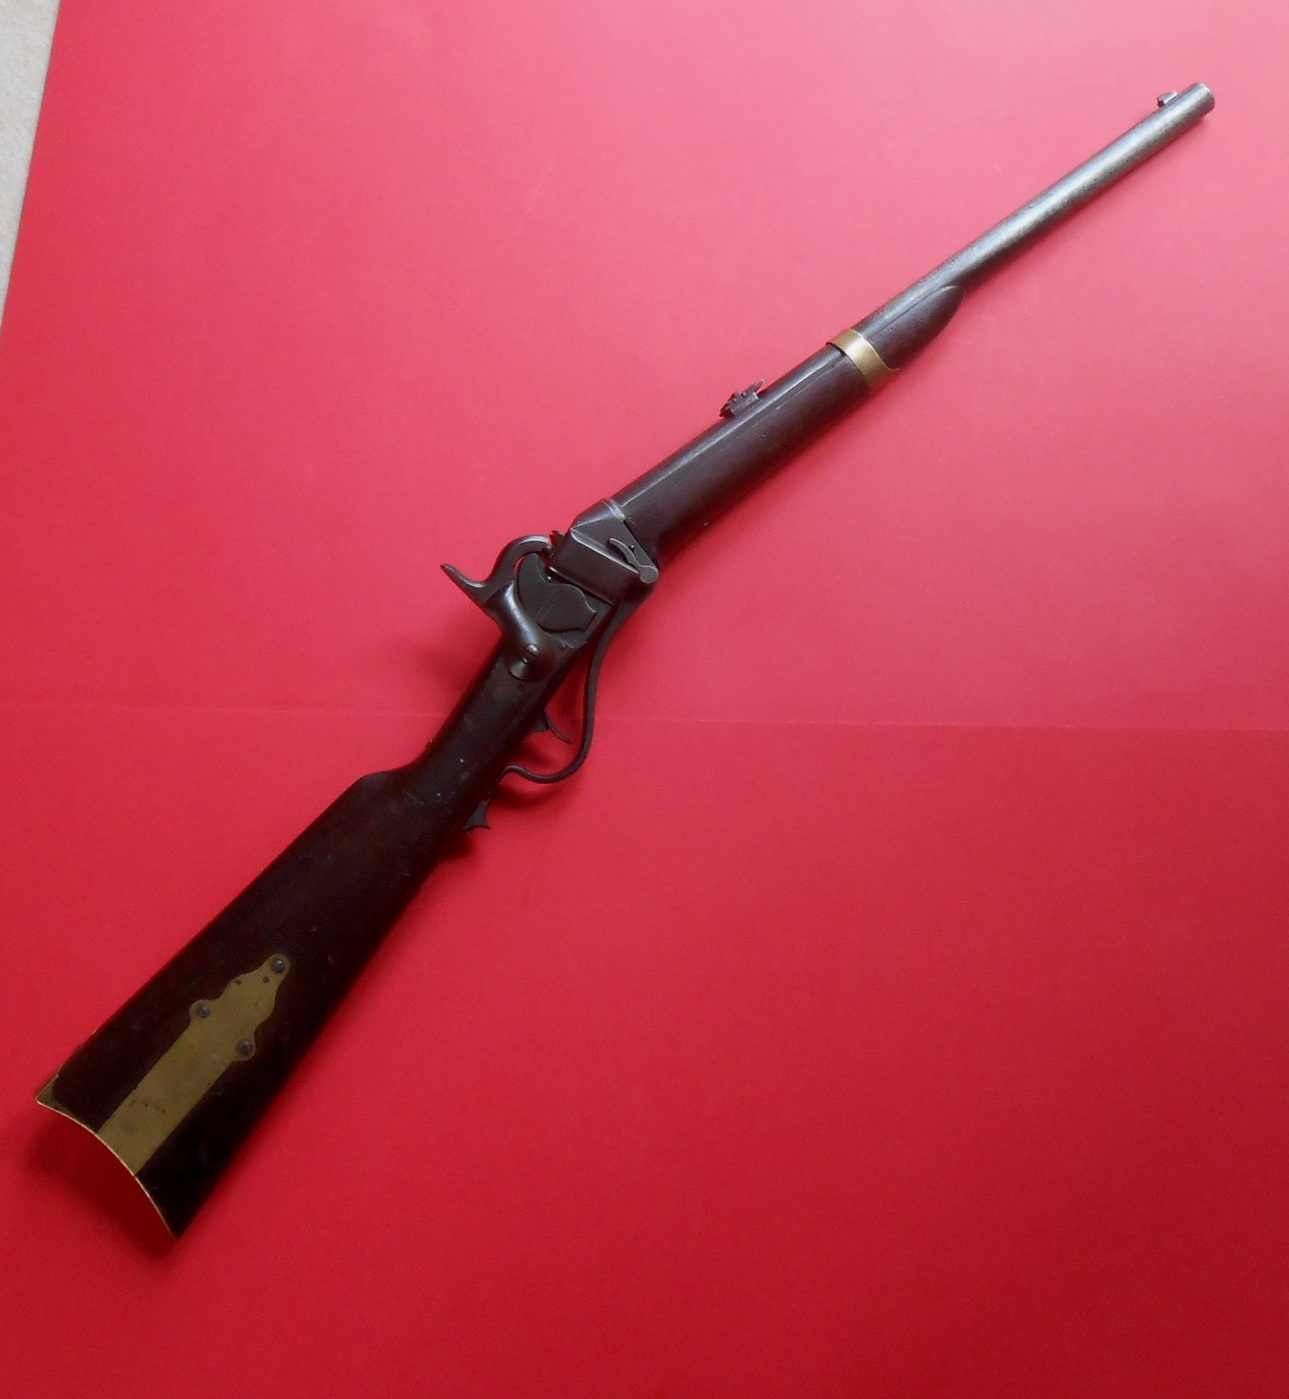 Model 1855 Sharps Cavalry Carbine, Manufactured To A British